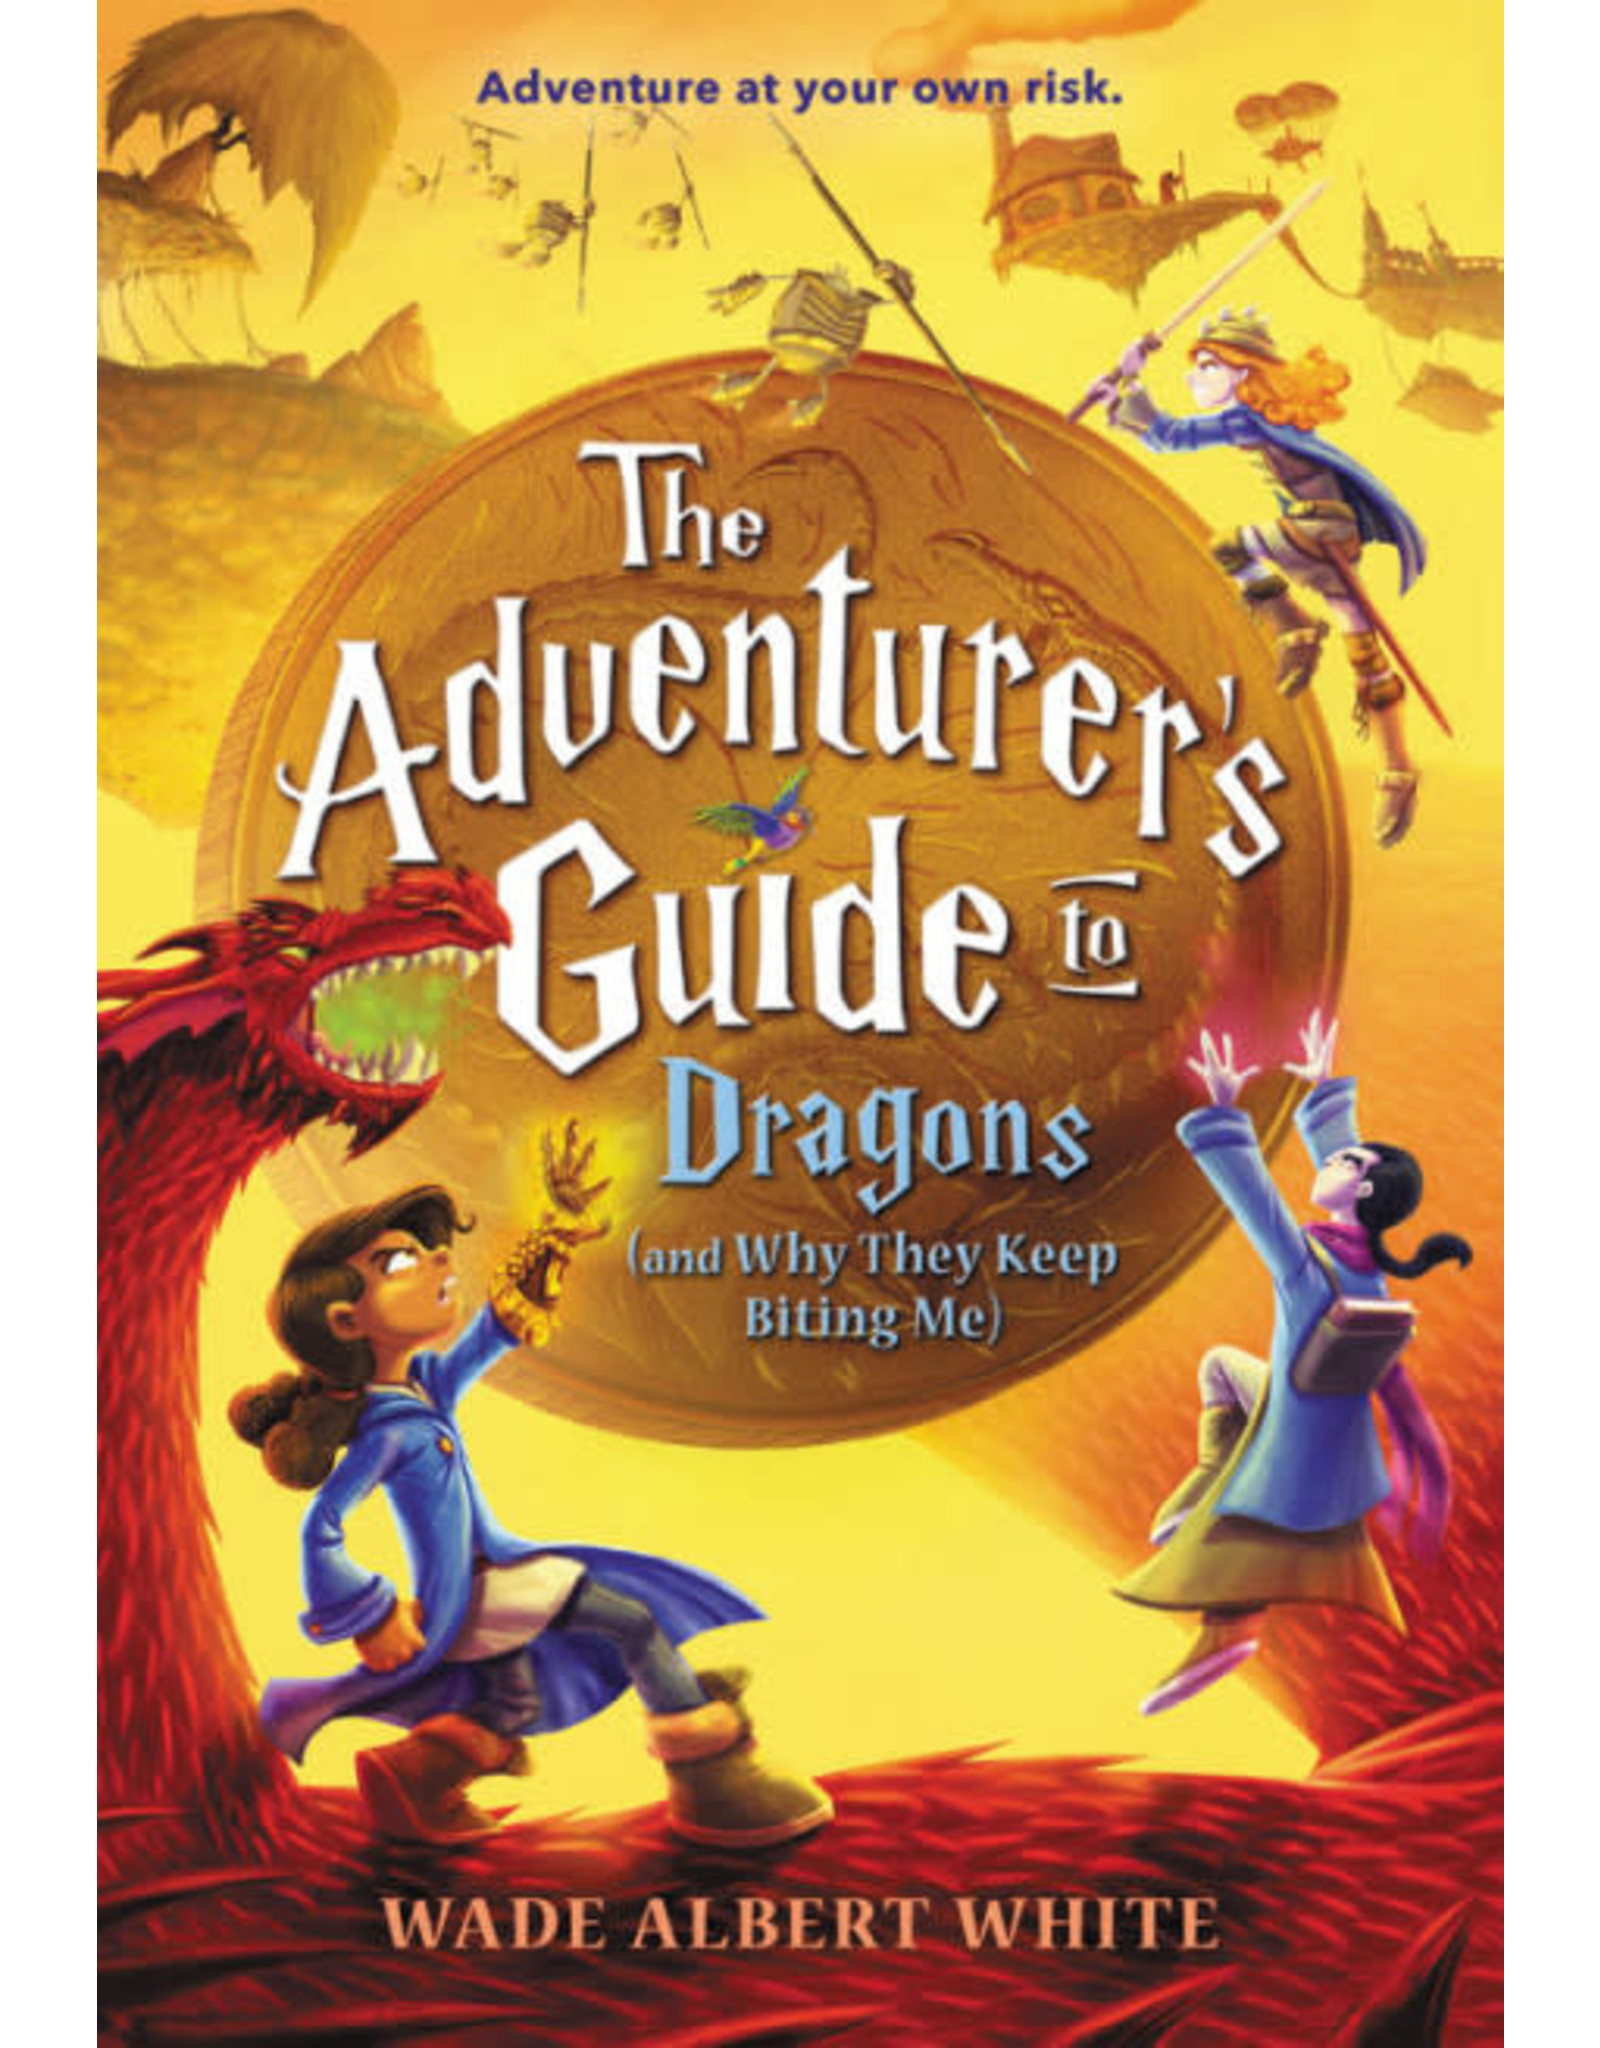 Hachette The Adventurer's Guide to Dragons (and Why They Keep Biting Me)